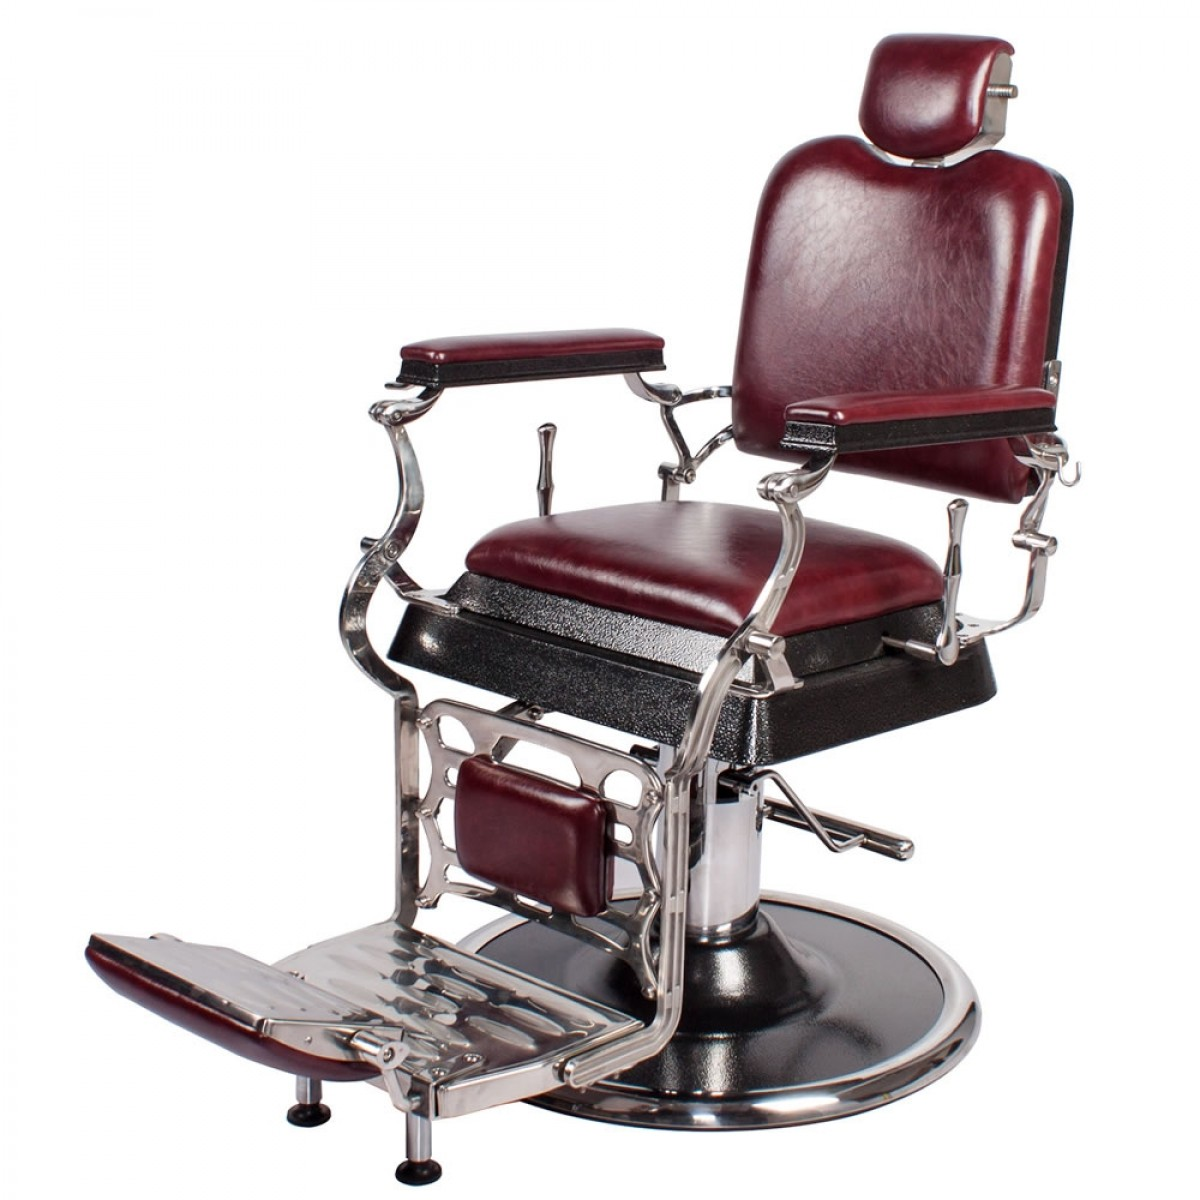 """EMPEROR"" Barber Shop Equipment Supplier, Barber Shop Equipment Distributor"